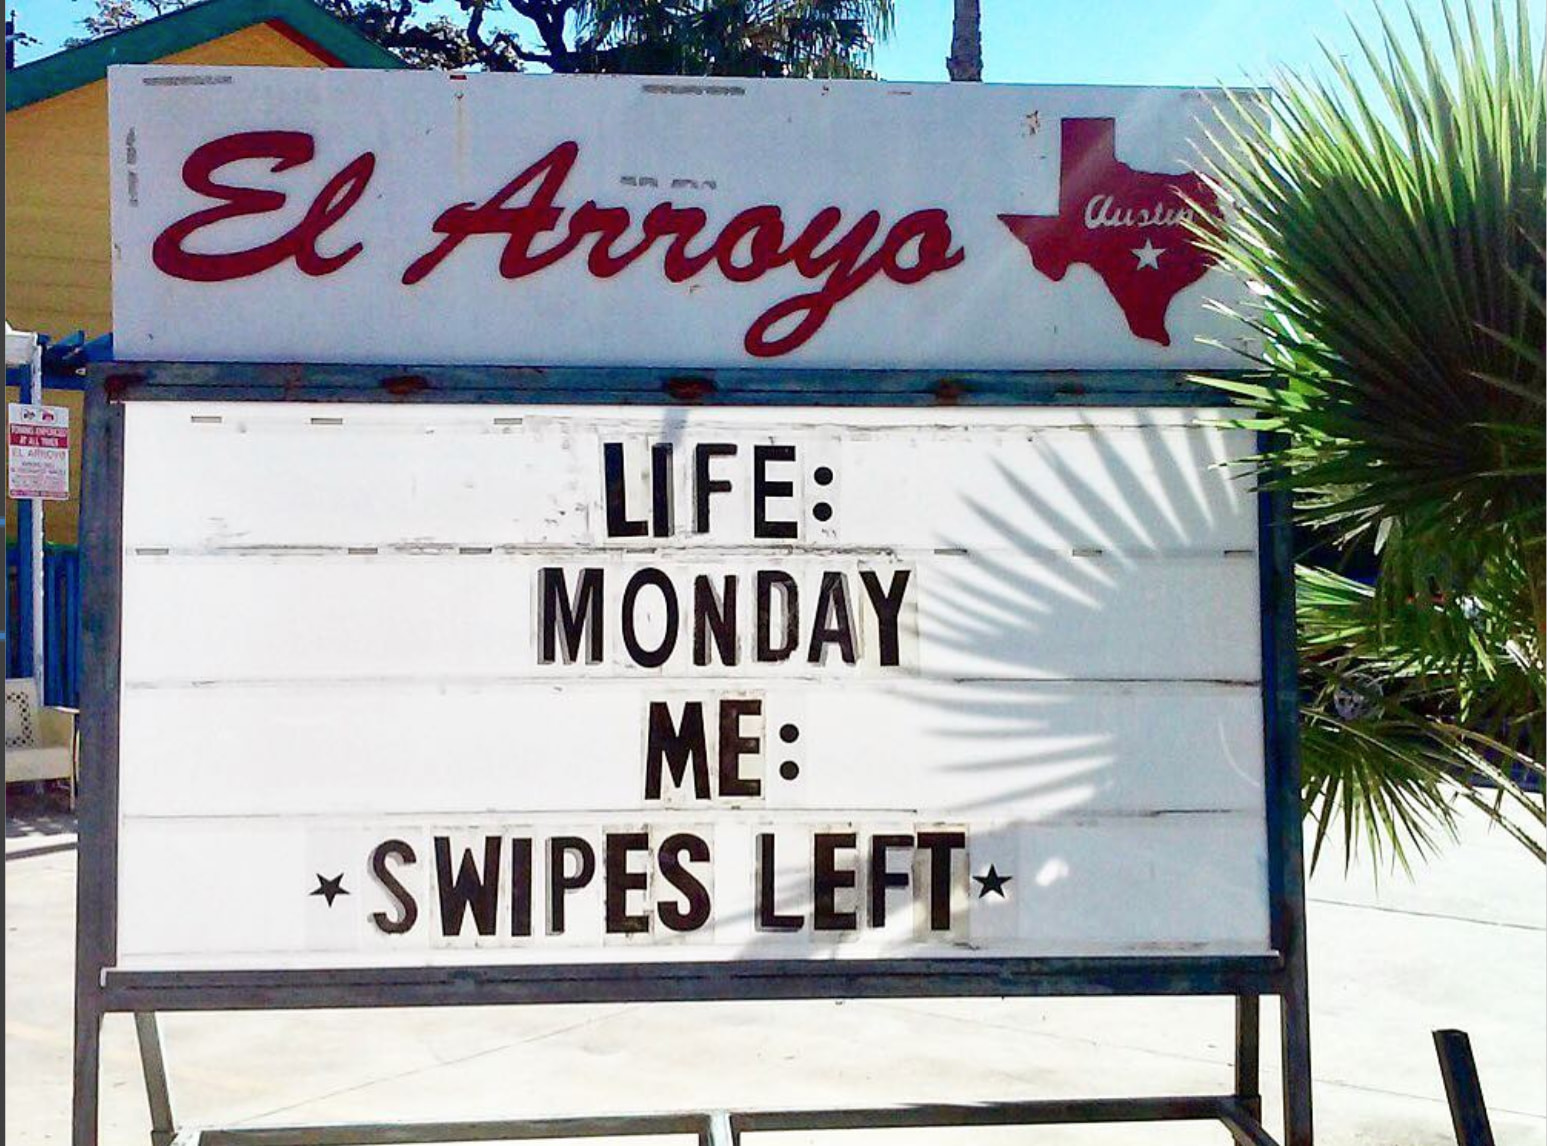 10 + Restaurants Signs From One Restaurant That Are Probably